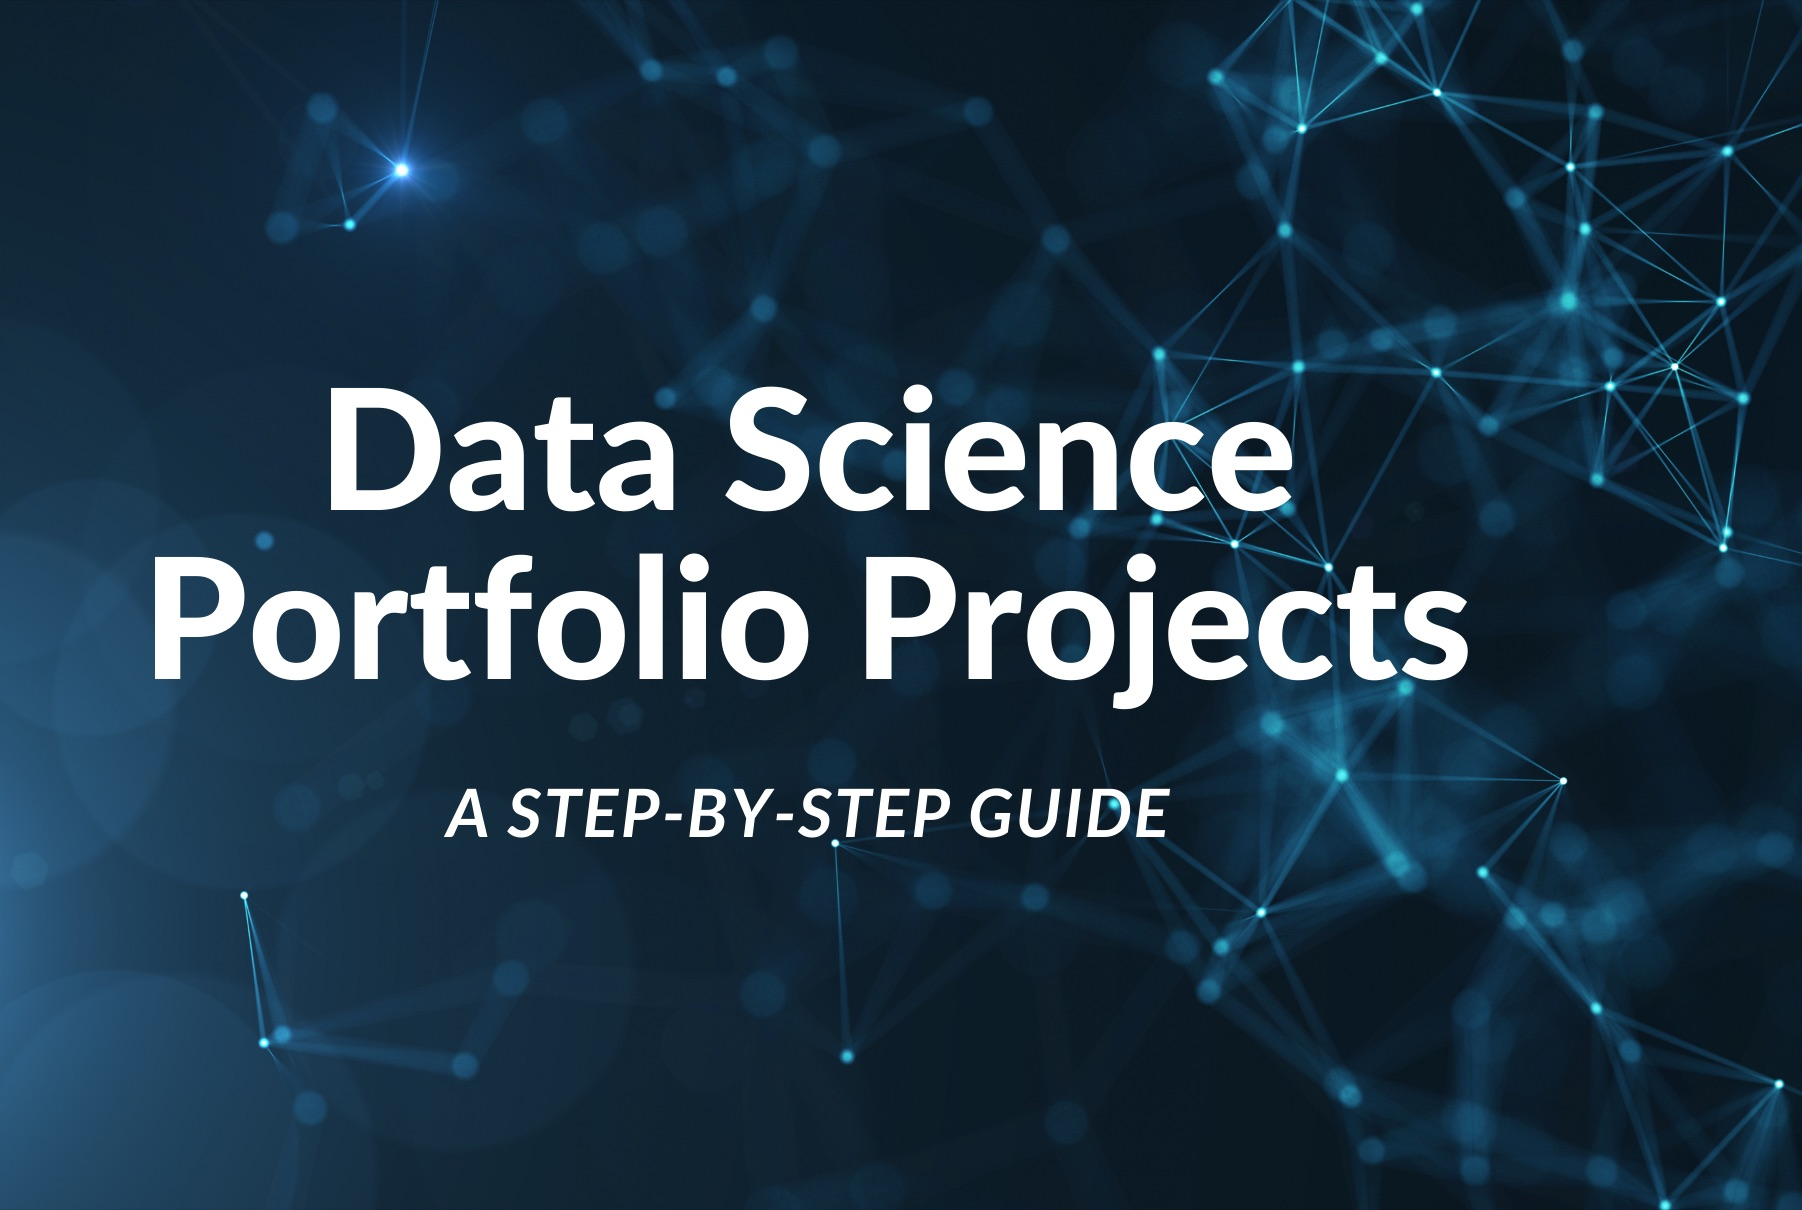 /how-to-create-an-authentic-data-science-project-for-your-portfolio-0o4z3txg feature image